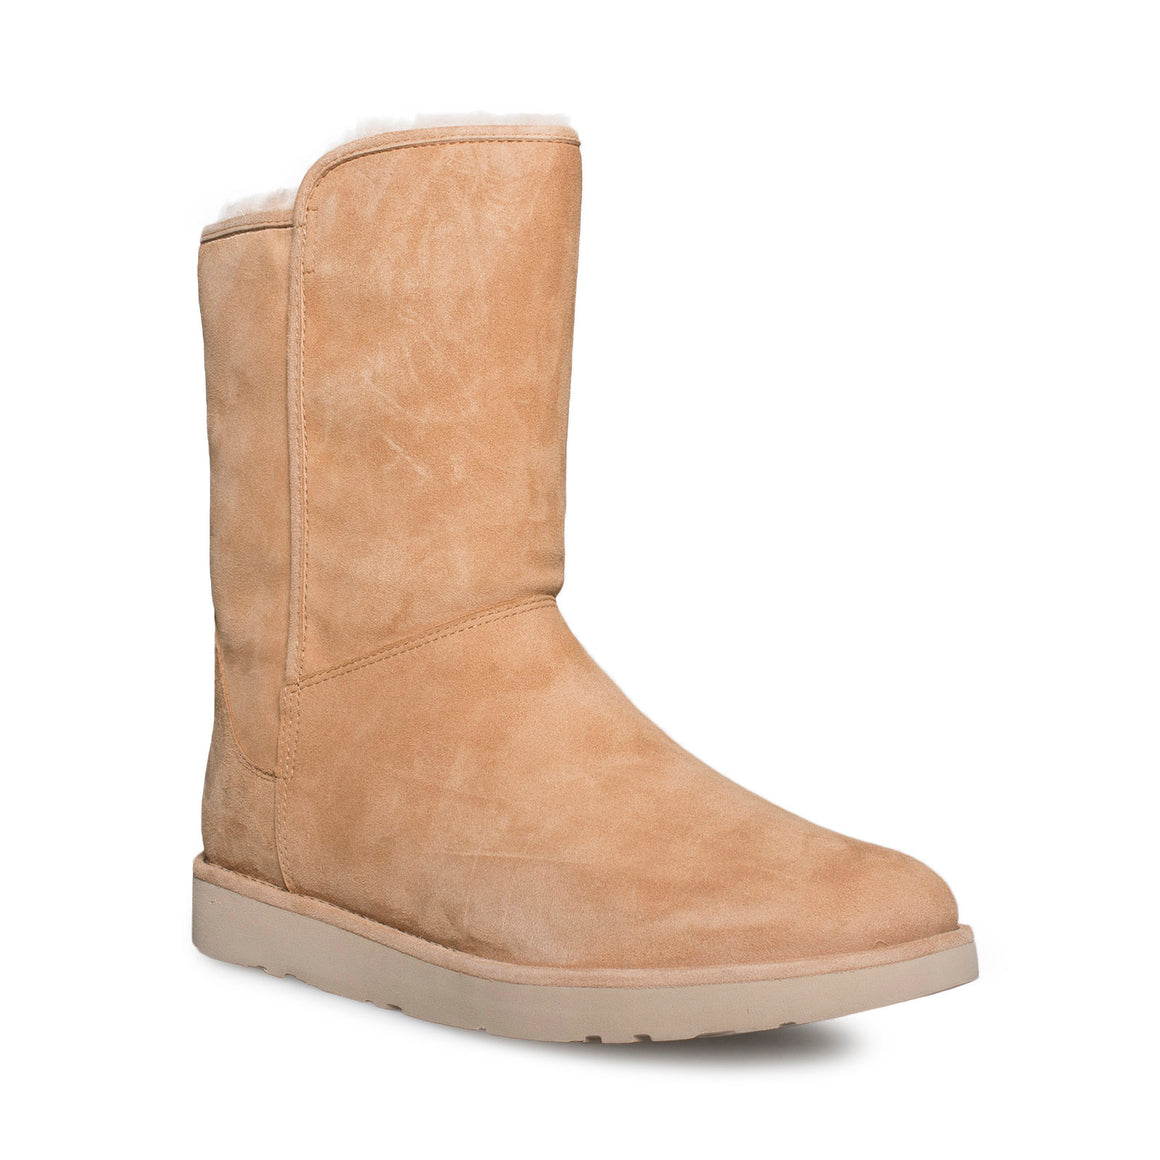 UGG Abree Short II Toast Boots - Women's